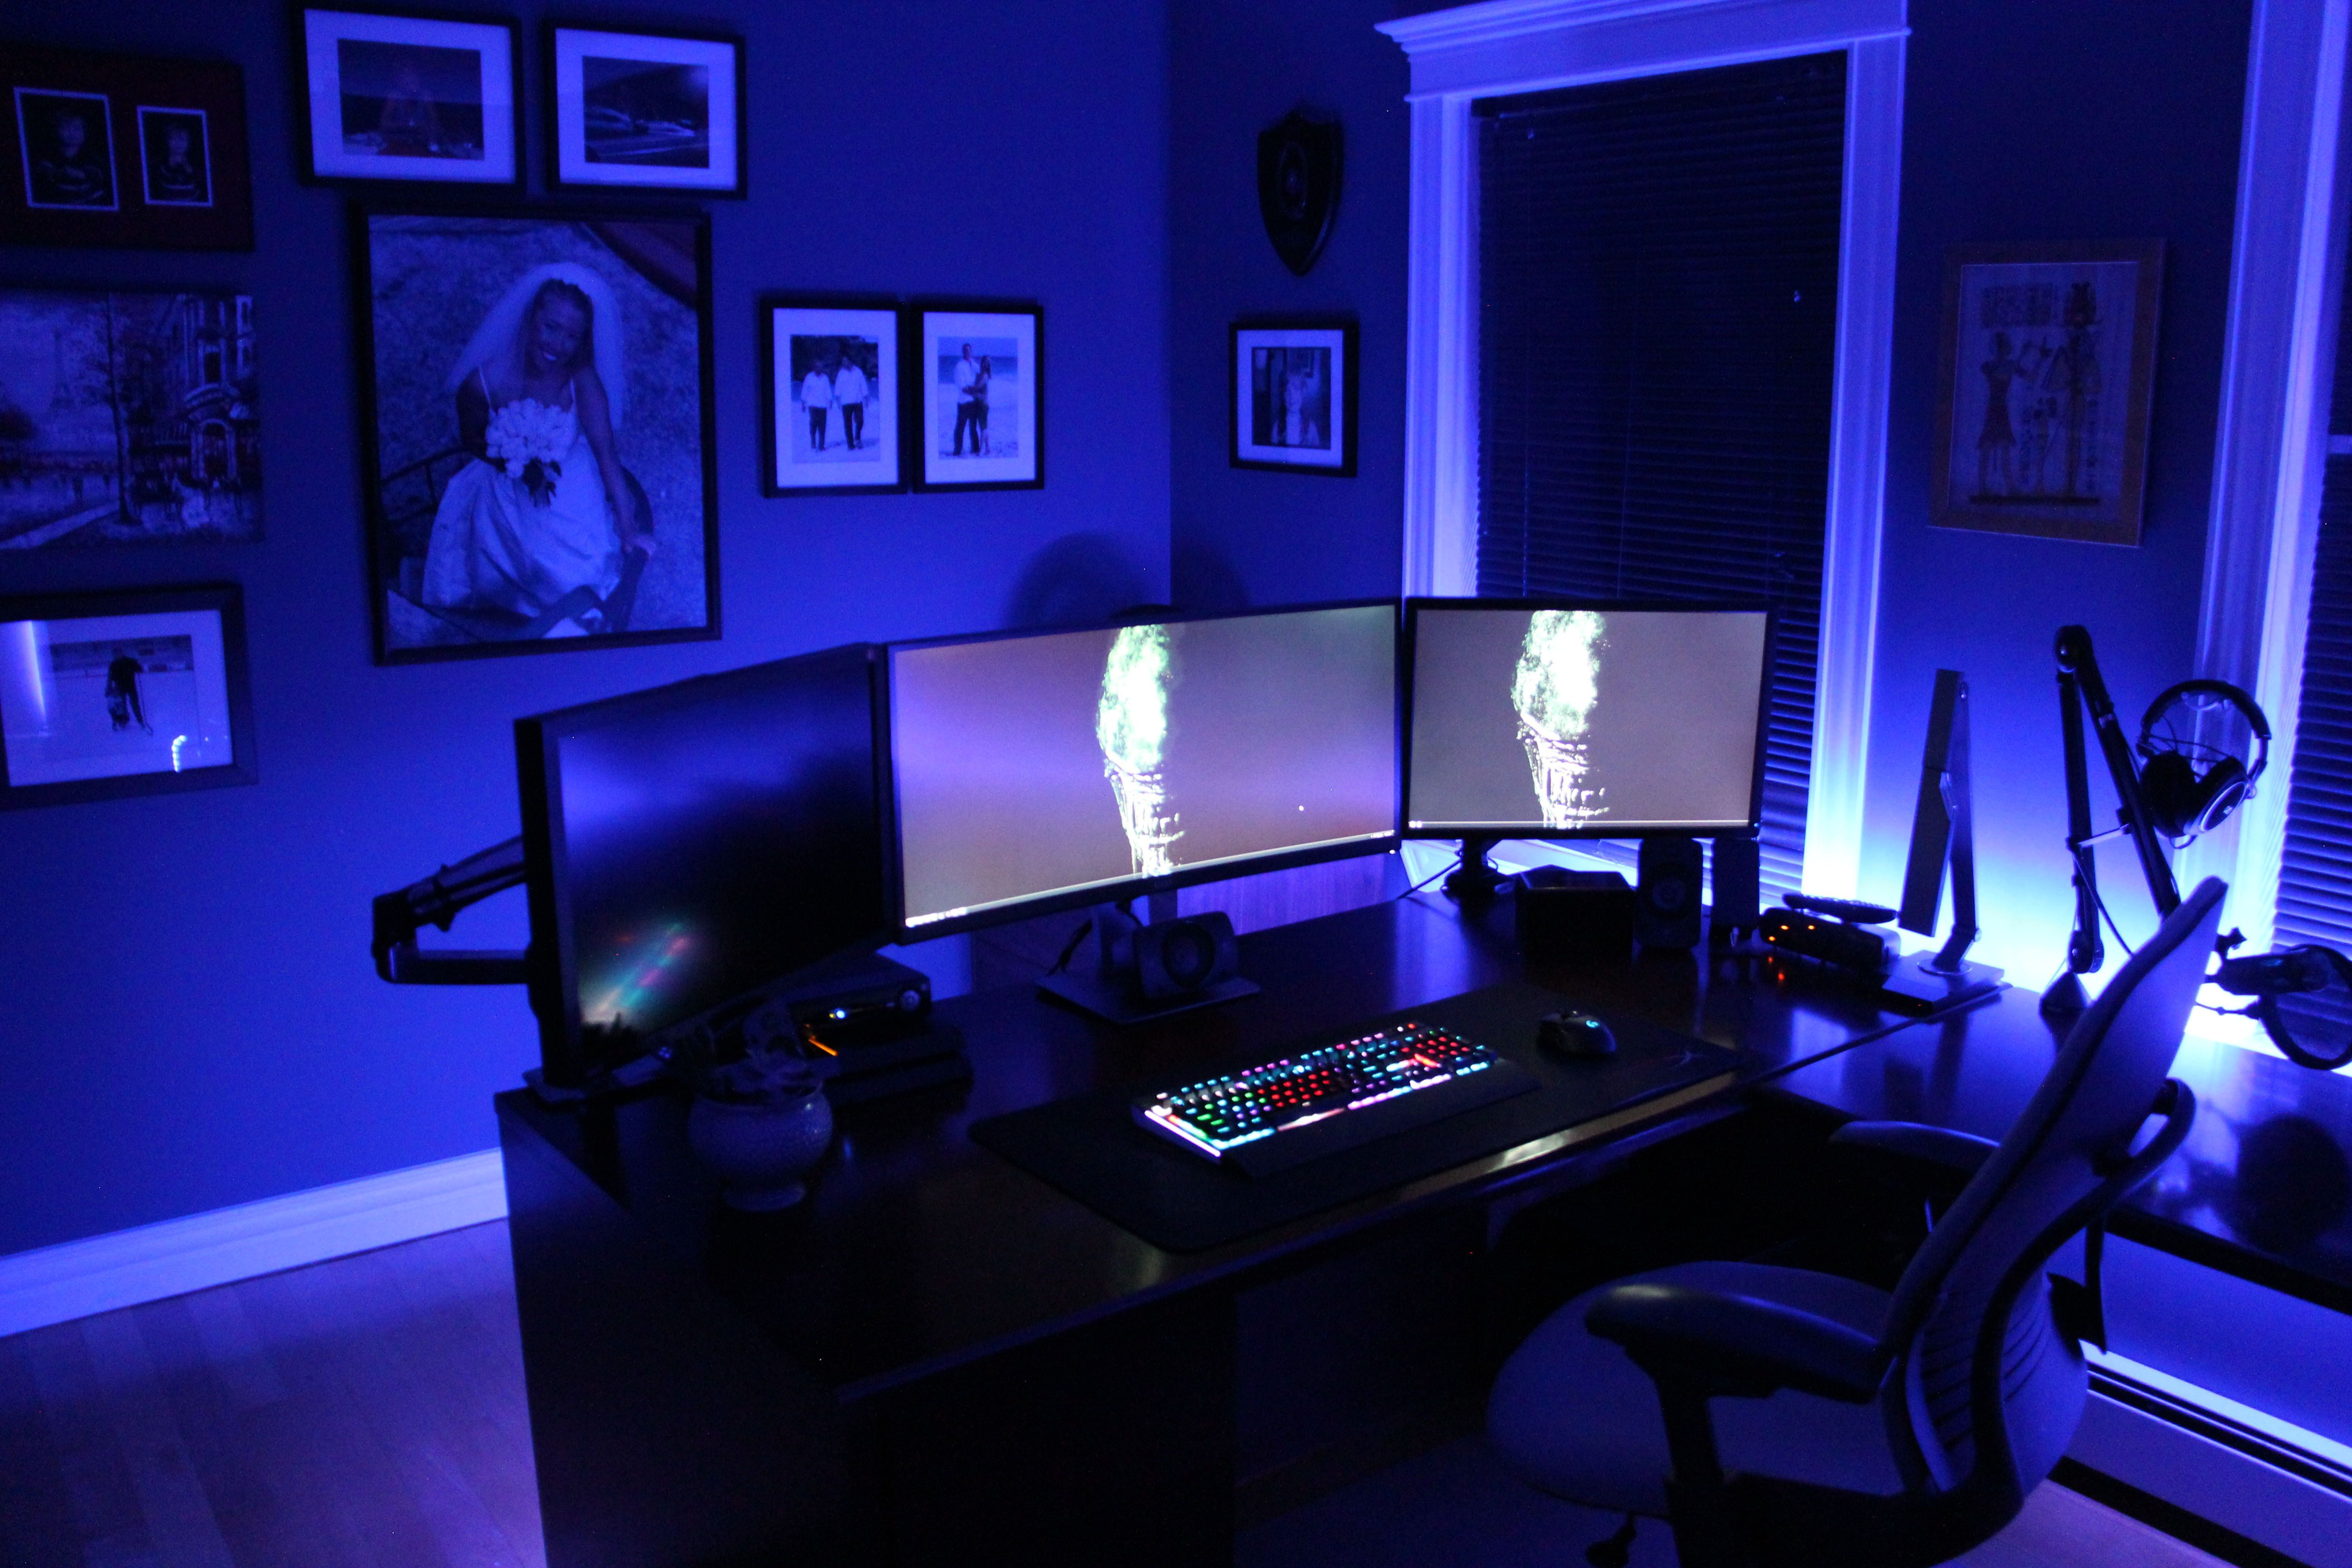 50+ Best Setup Of Video Game Room Ideas [A Gamer's Guide